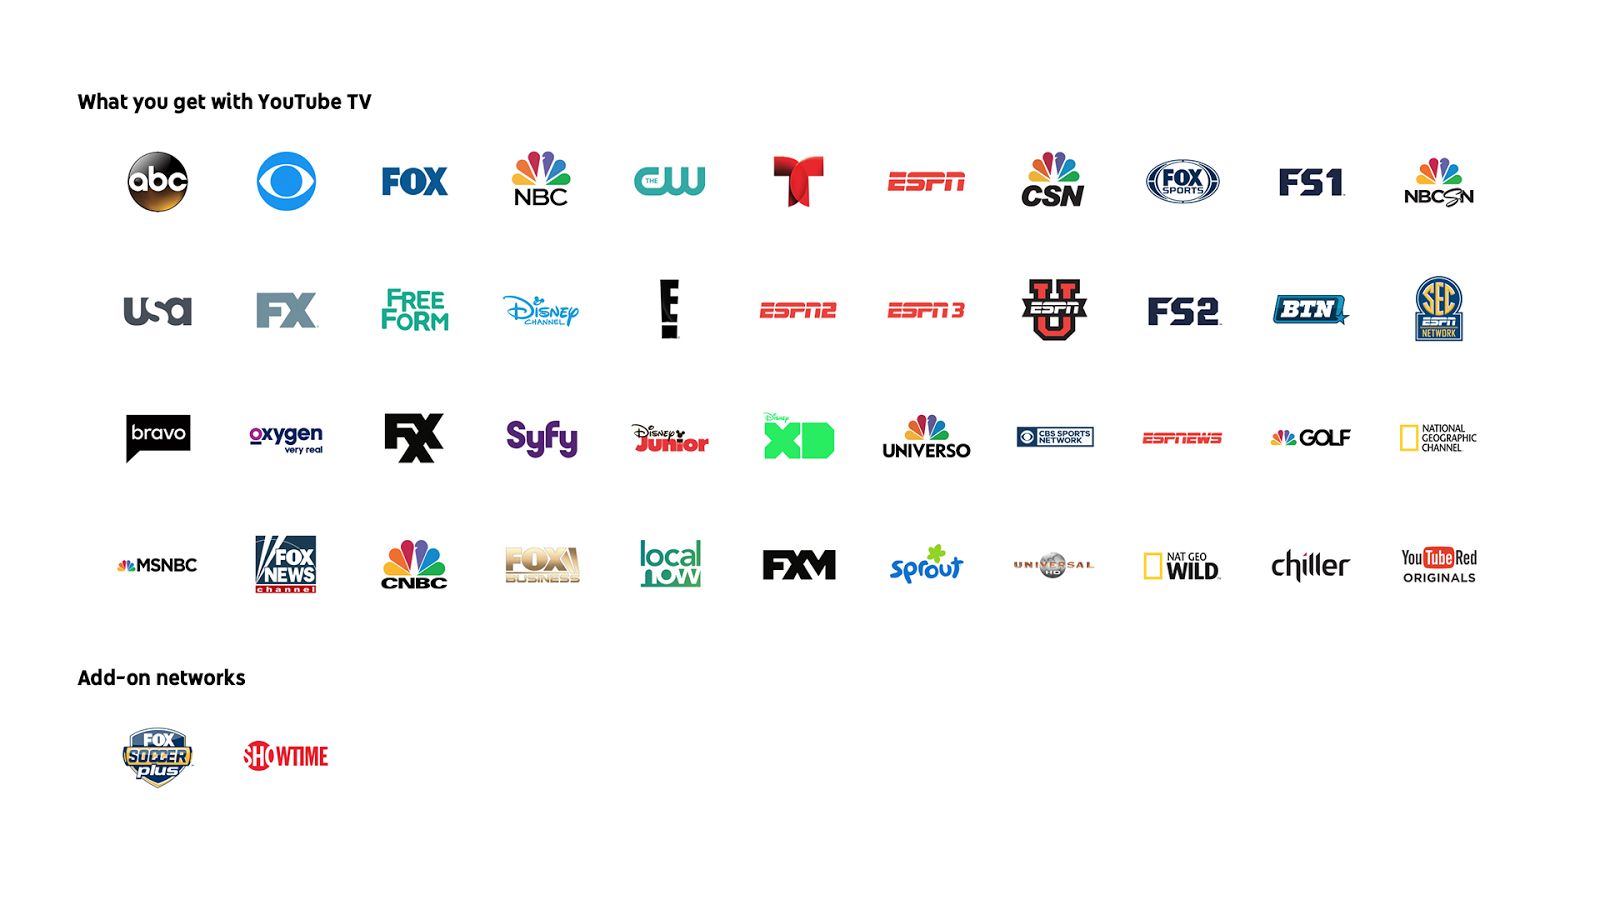 Youtube tv is official includes 40 networks for 35month youtube tv includes abc cbs fox nbc espn and dozens of other local sports and cable networks see the below picture for all of them solutioingenieria Gallery